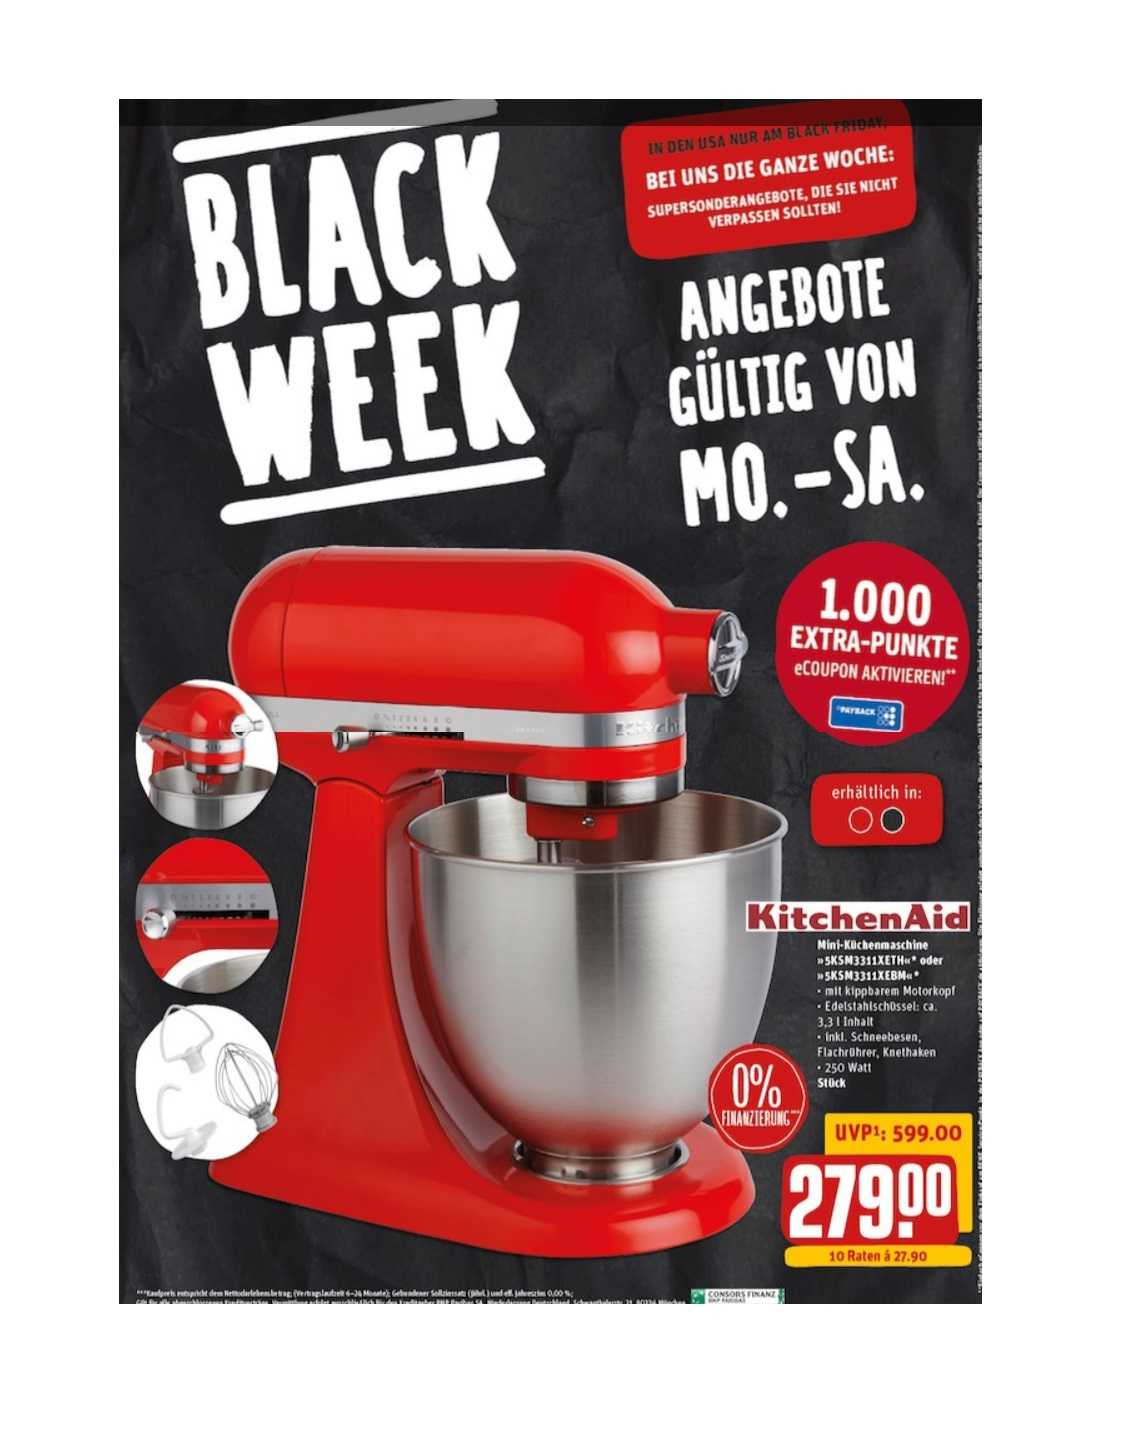 Kitchenaid Küchenmaschine Idealo Offline Rewe Center Kitchenaid Artisan Mini Küchenmaschine